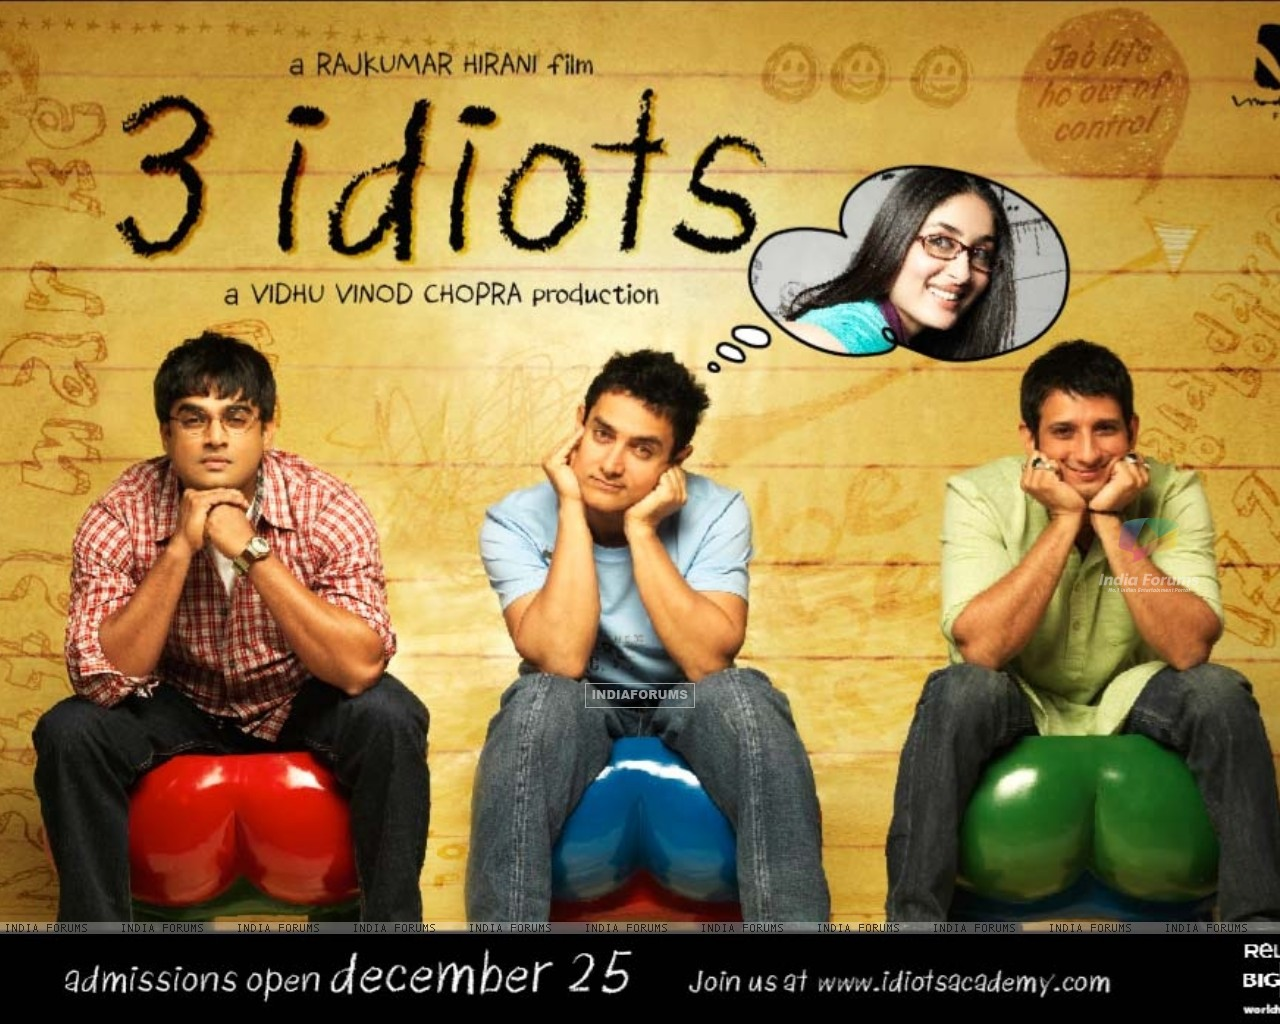 Wallpaper of the movie 3 Idiots (40300) size:1280x1024